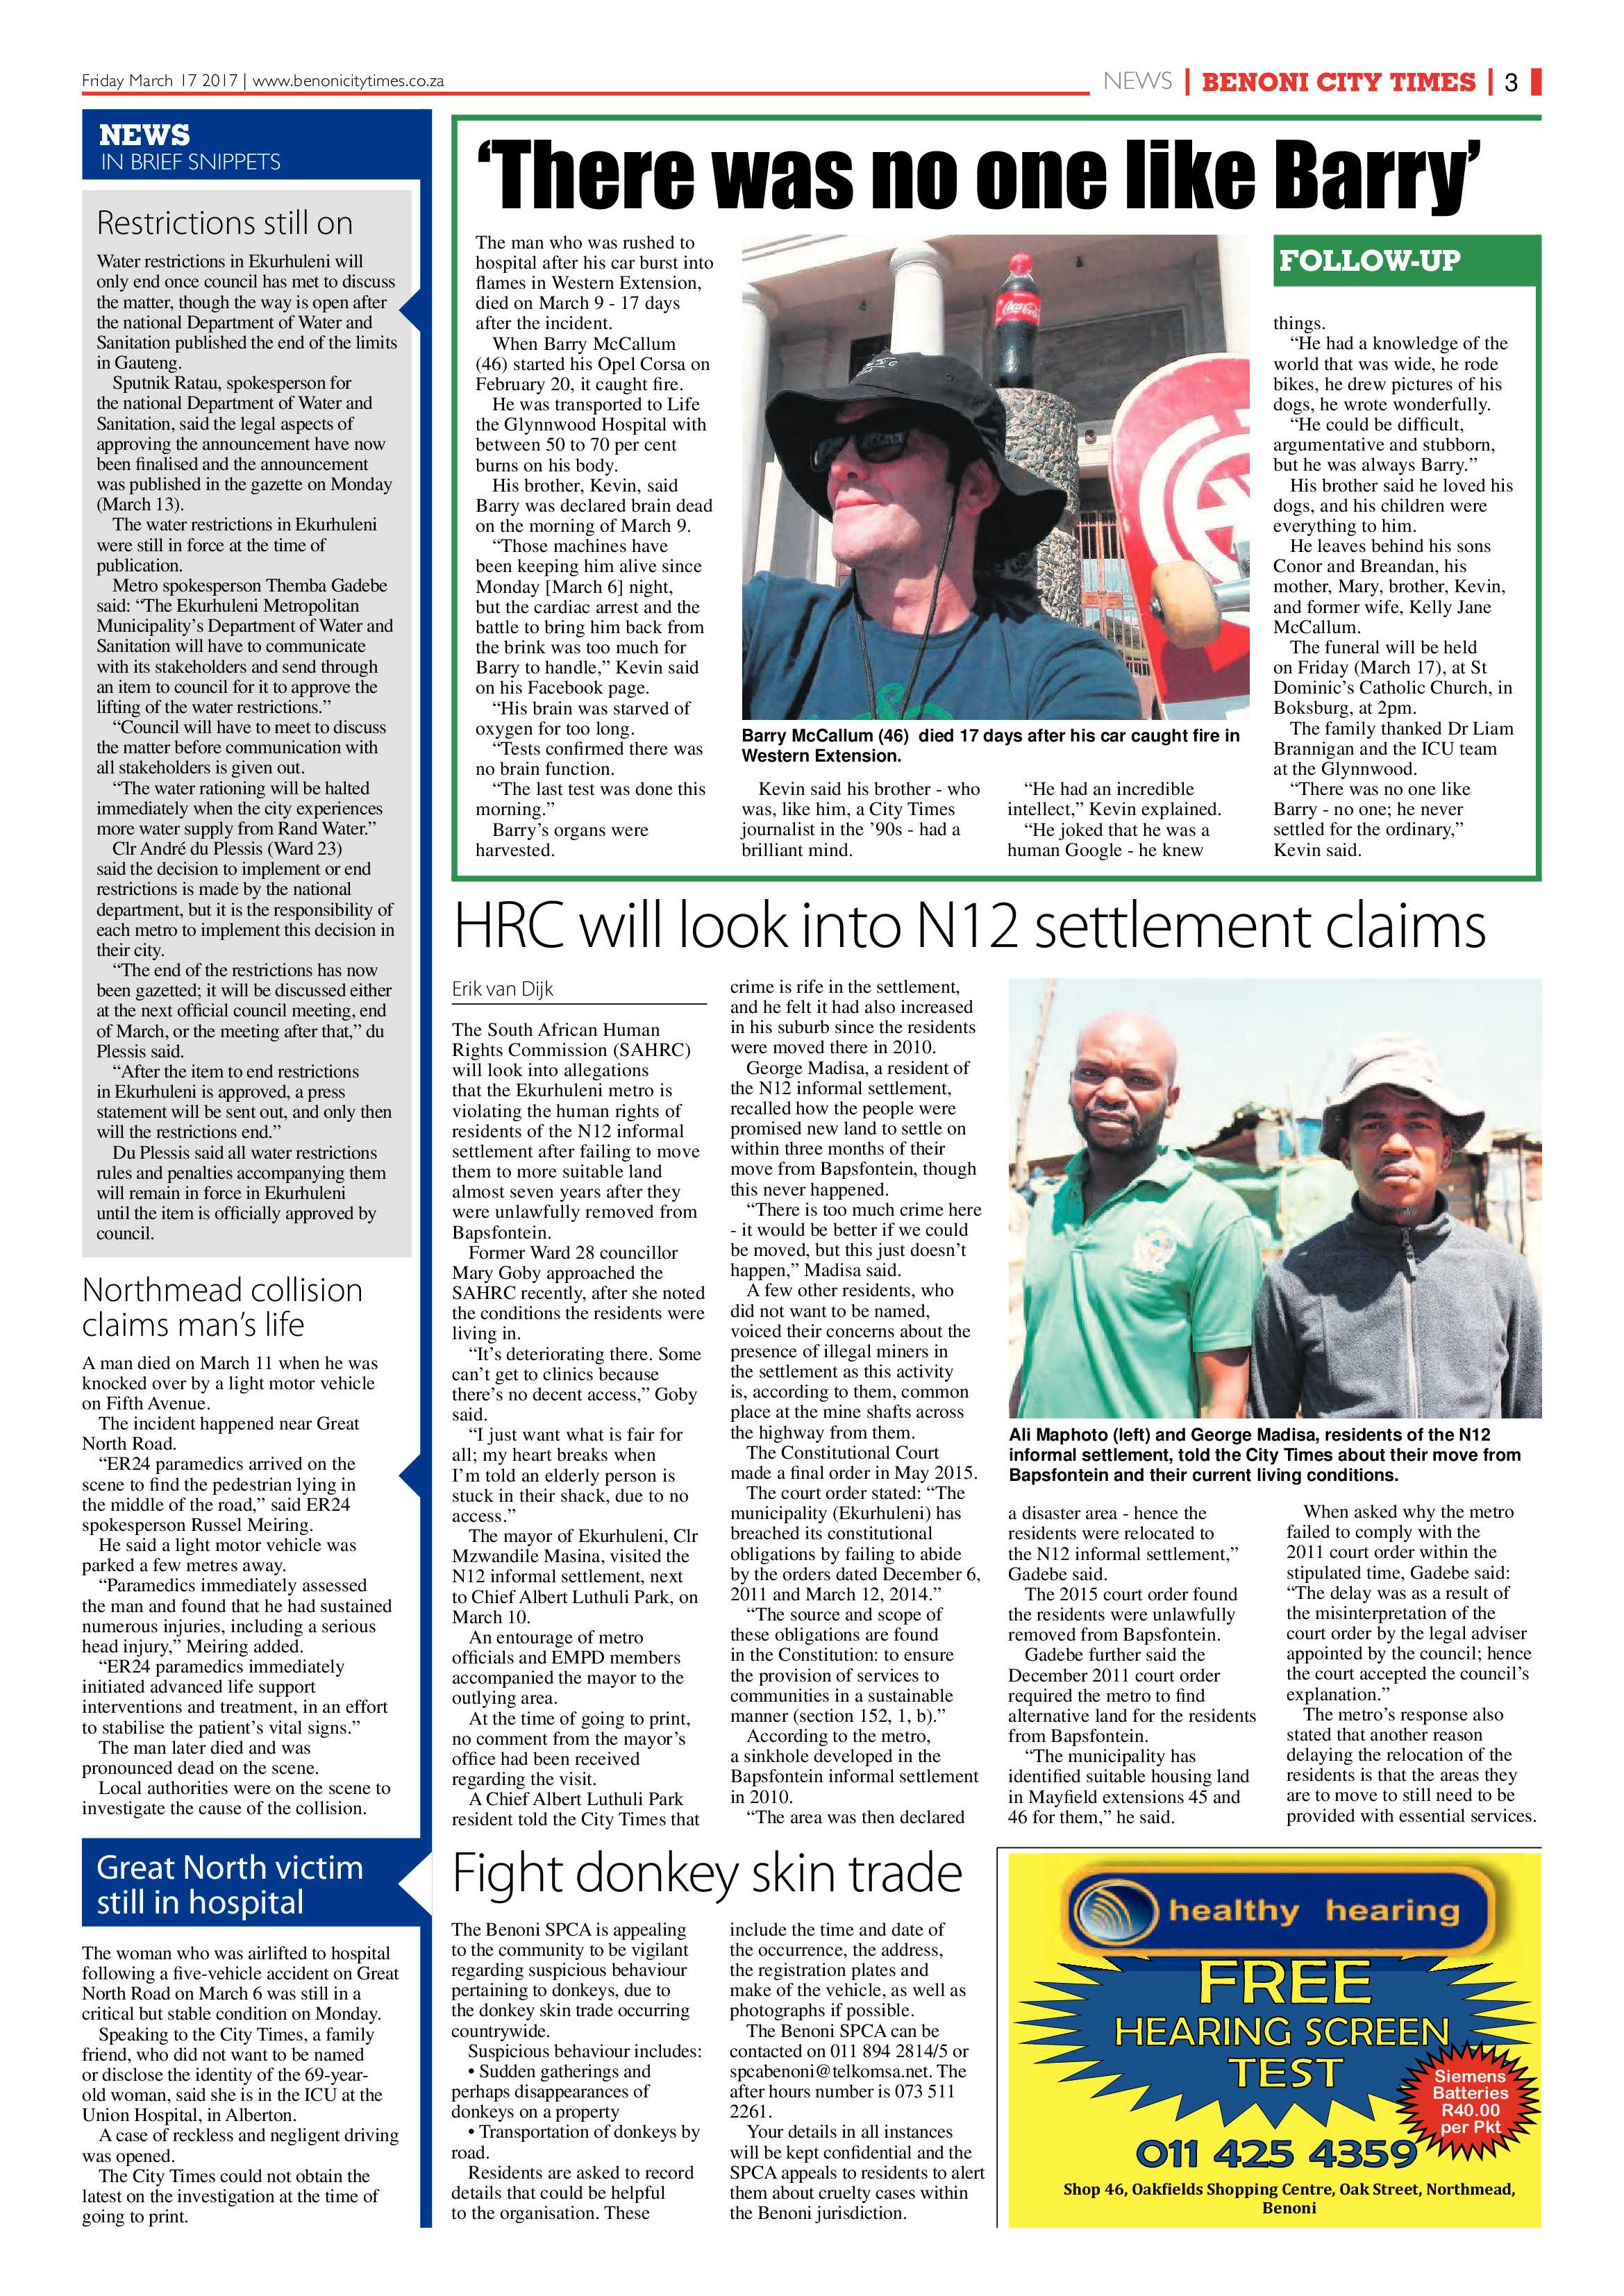 benoni-city-times-16-march-2017-epapers-page-3